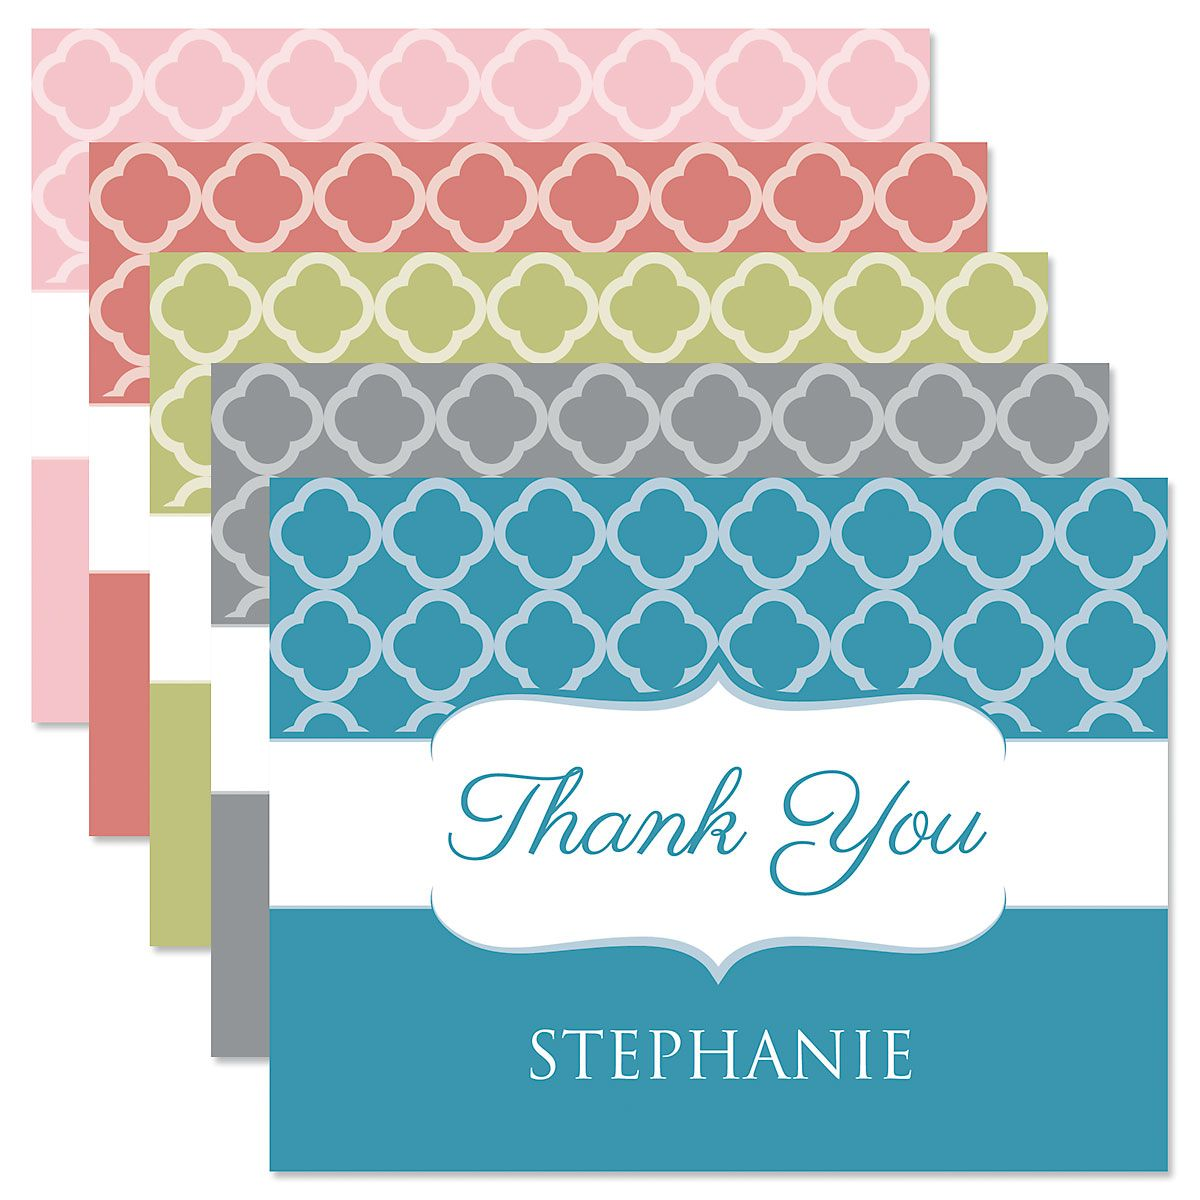 Renaissance Personalized Thank You Cards